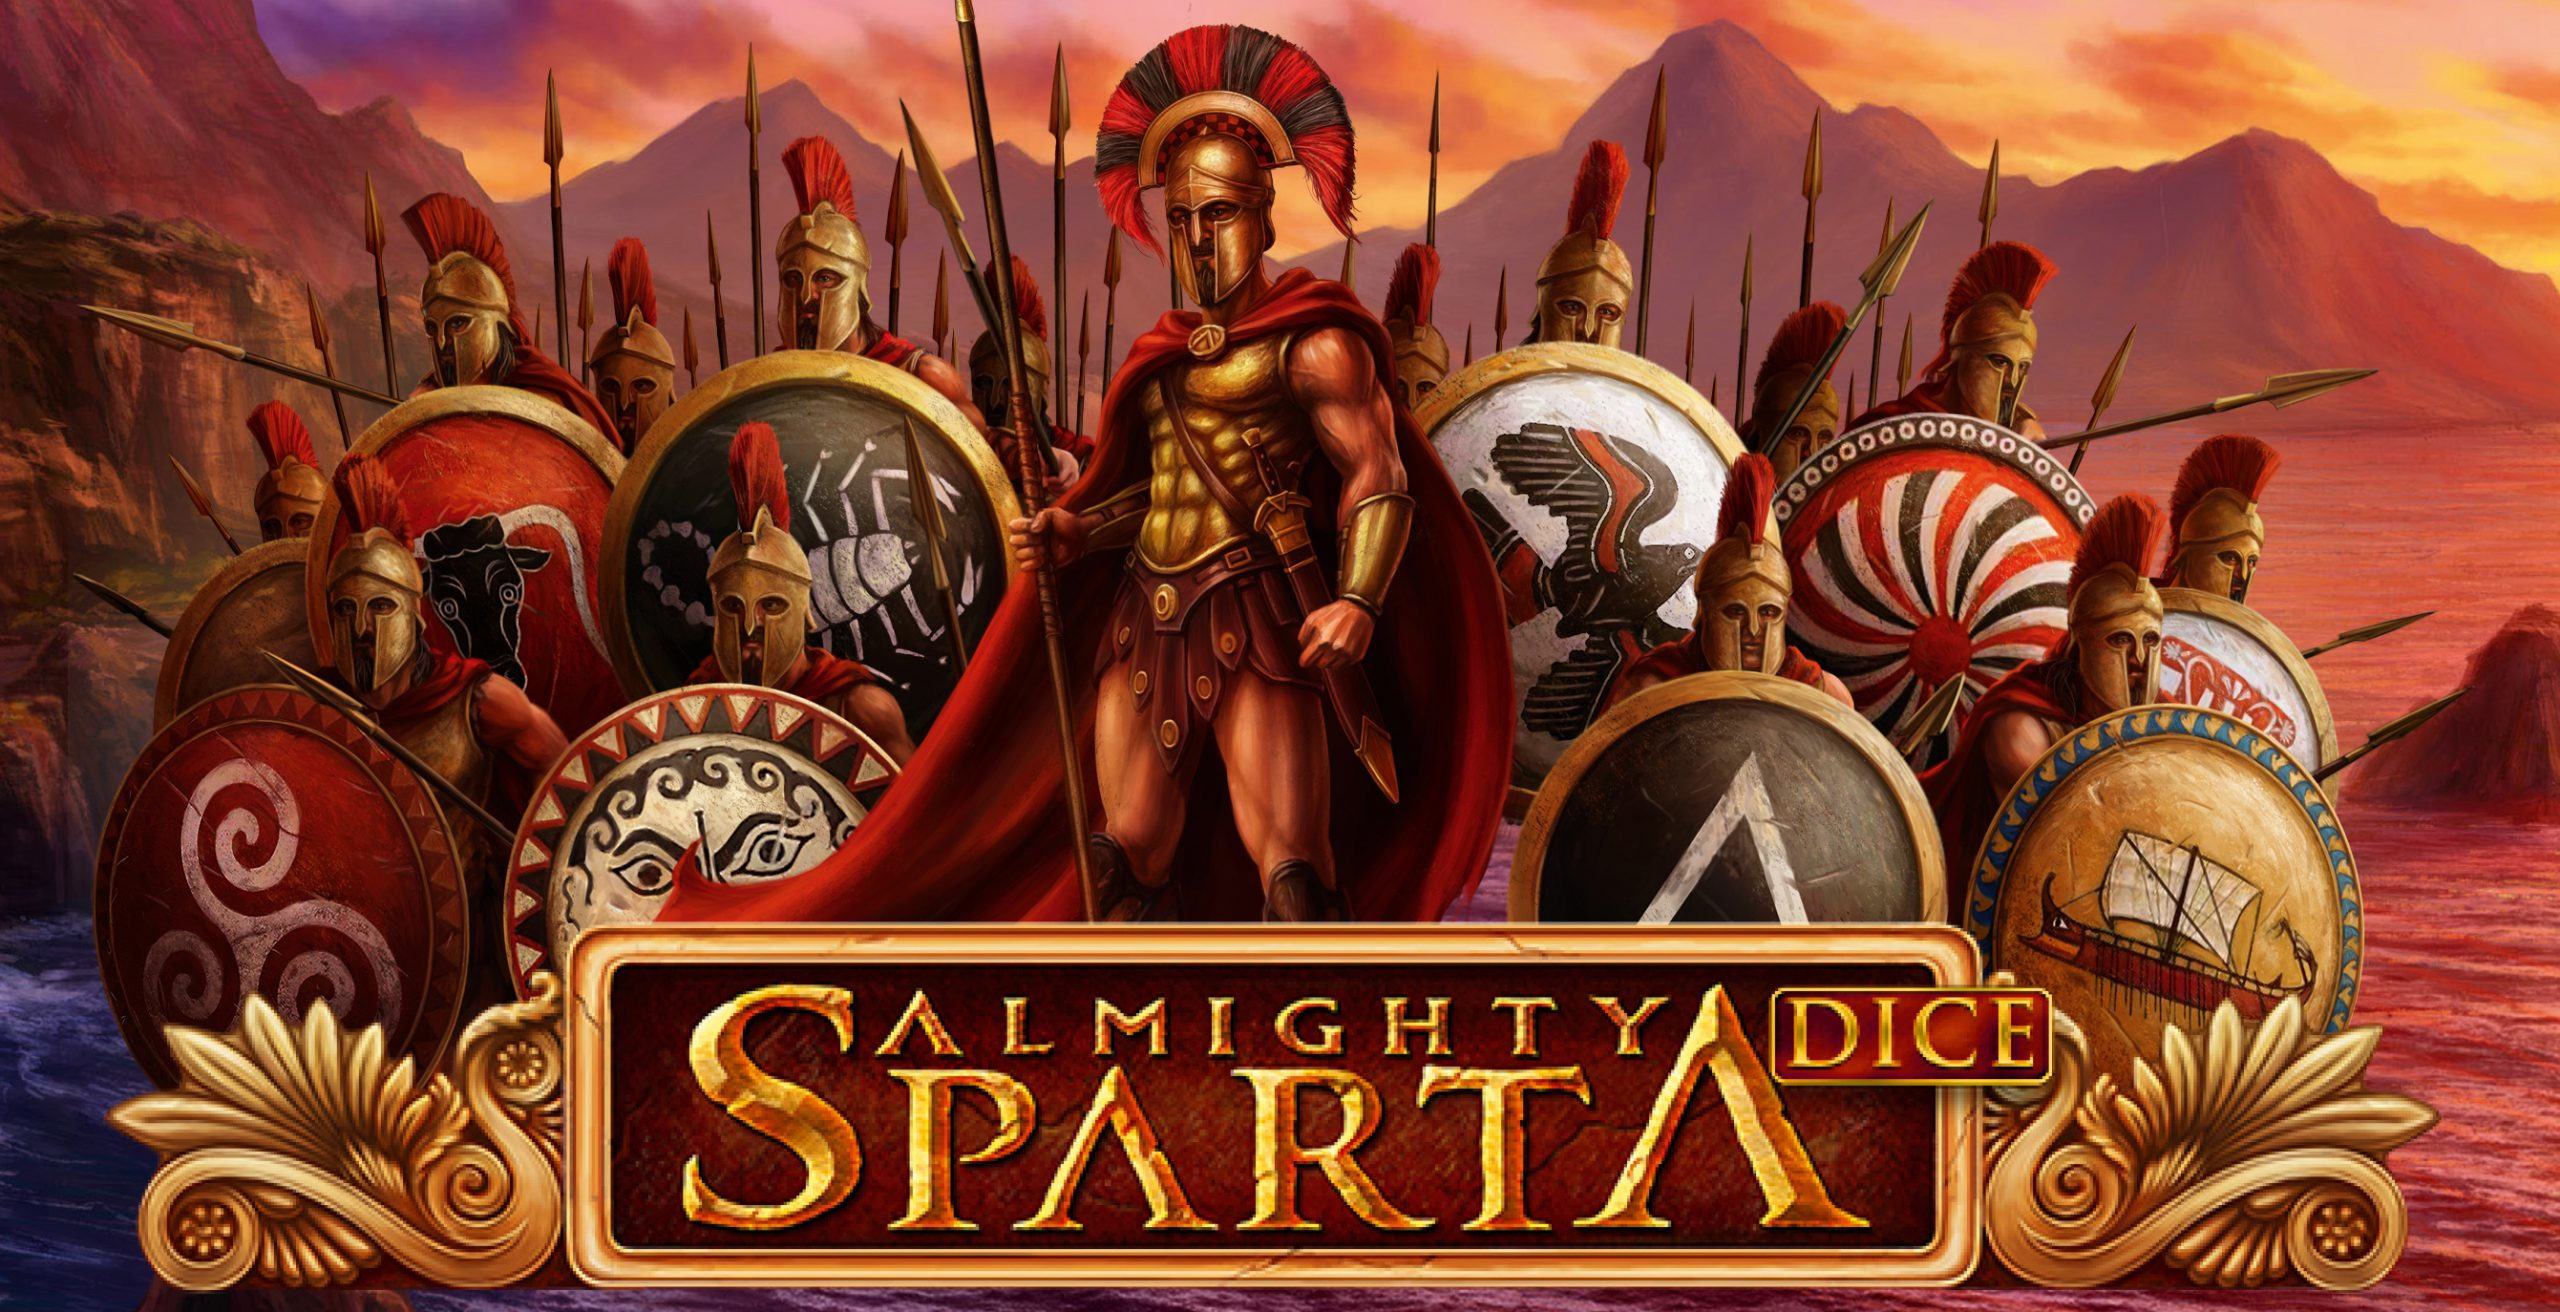 Almighty Sparta Dice is an online dice game on betFIRST Casino in which you'll play the role of King Leonidas